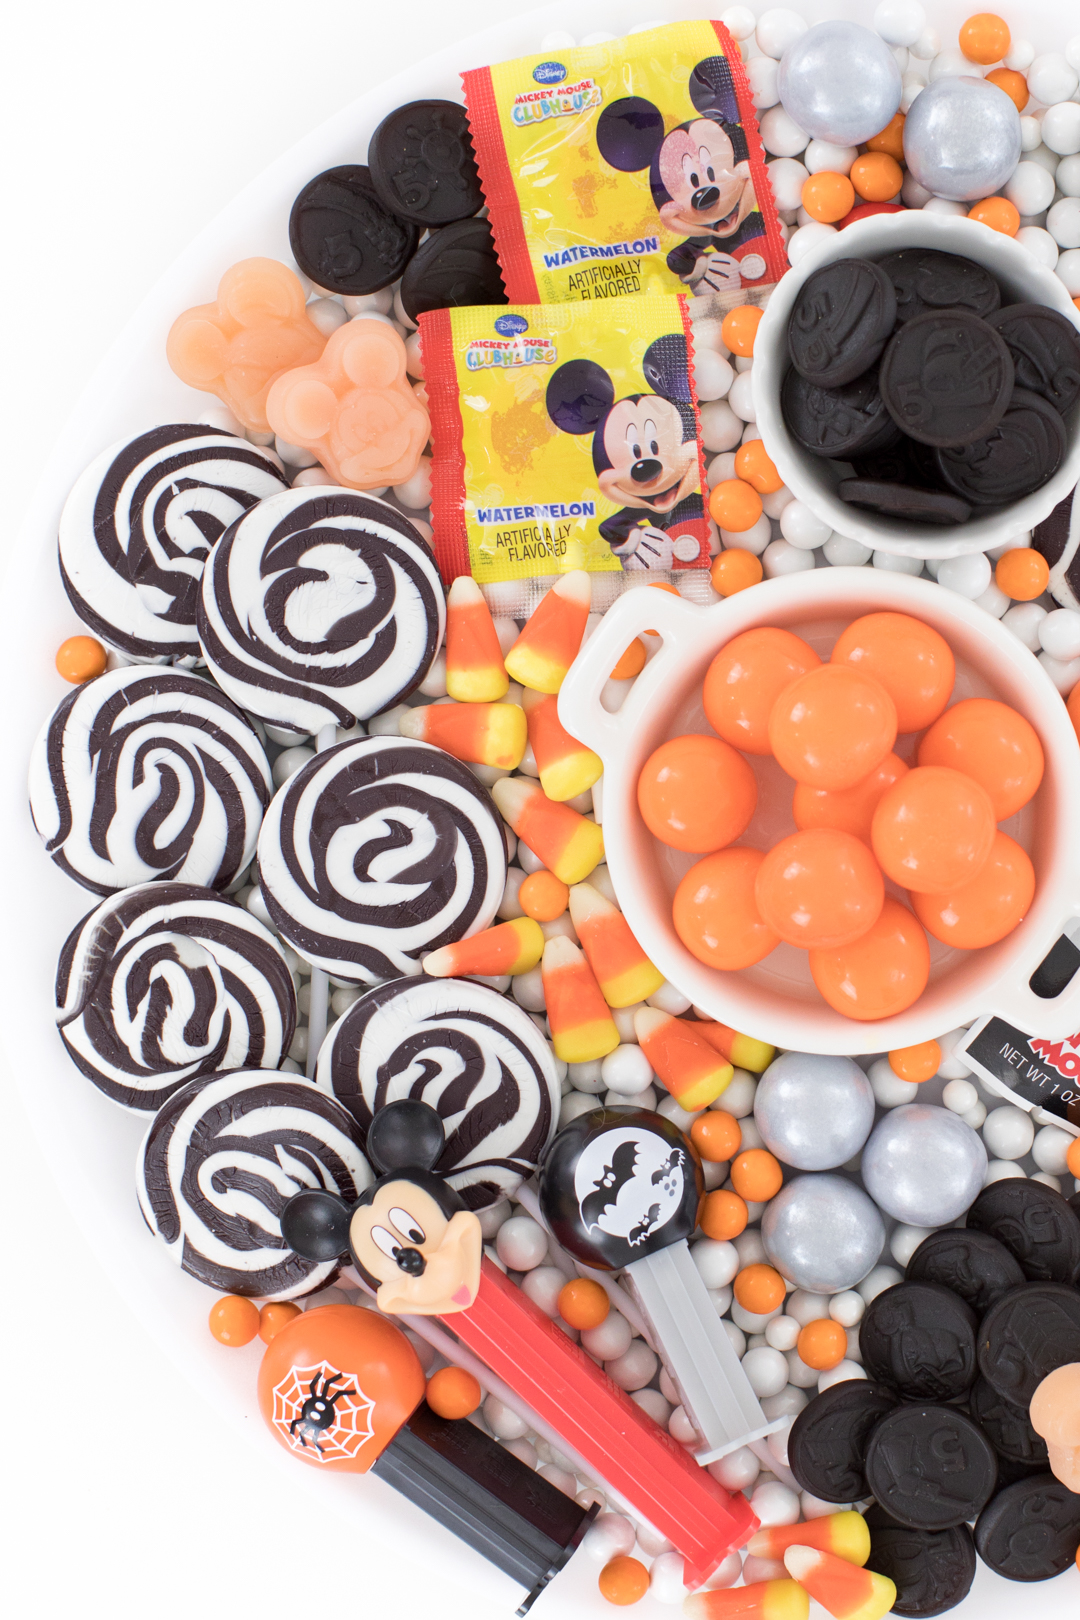 Black, white and orange themed halloween candy platter with Mickey Mouse theme.